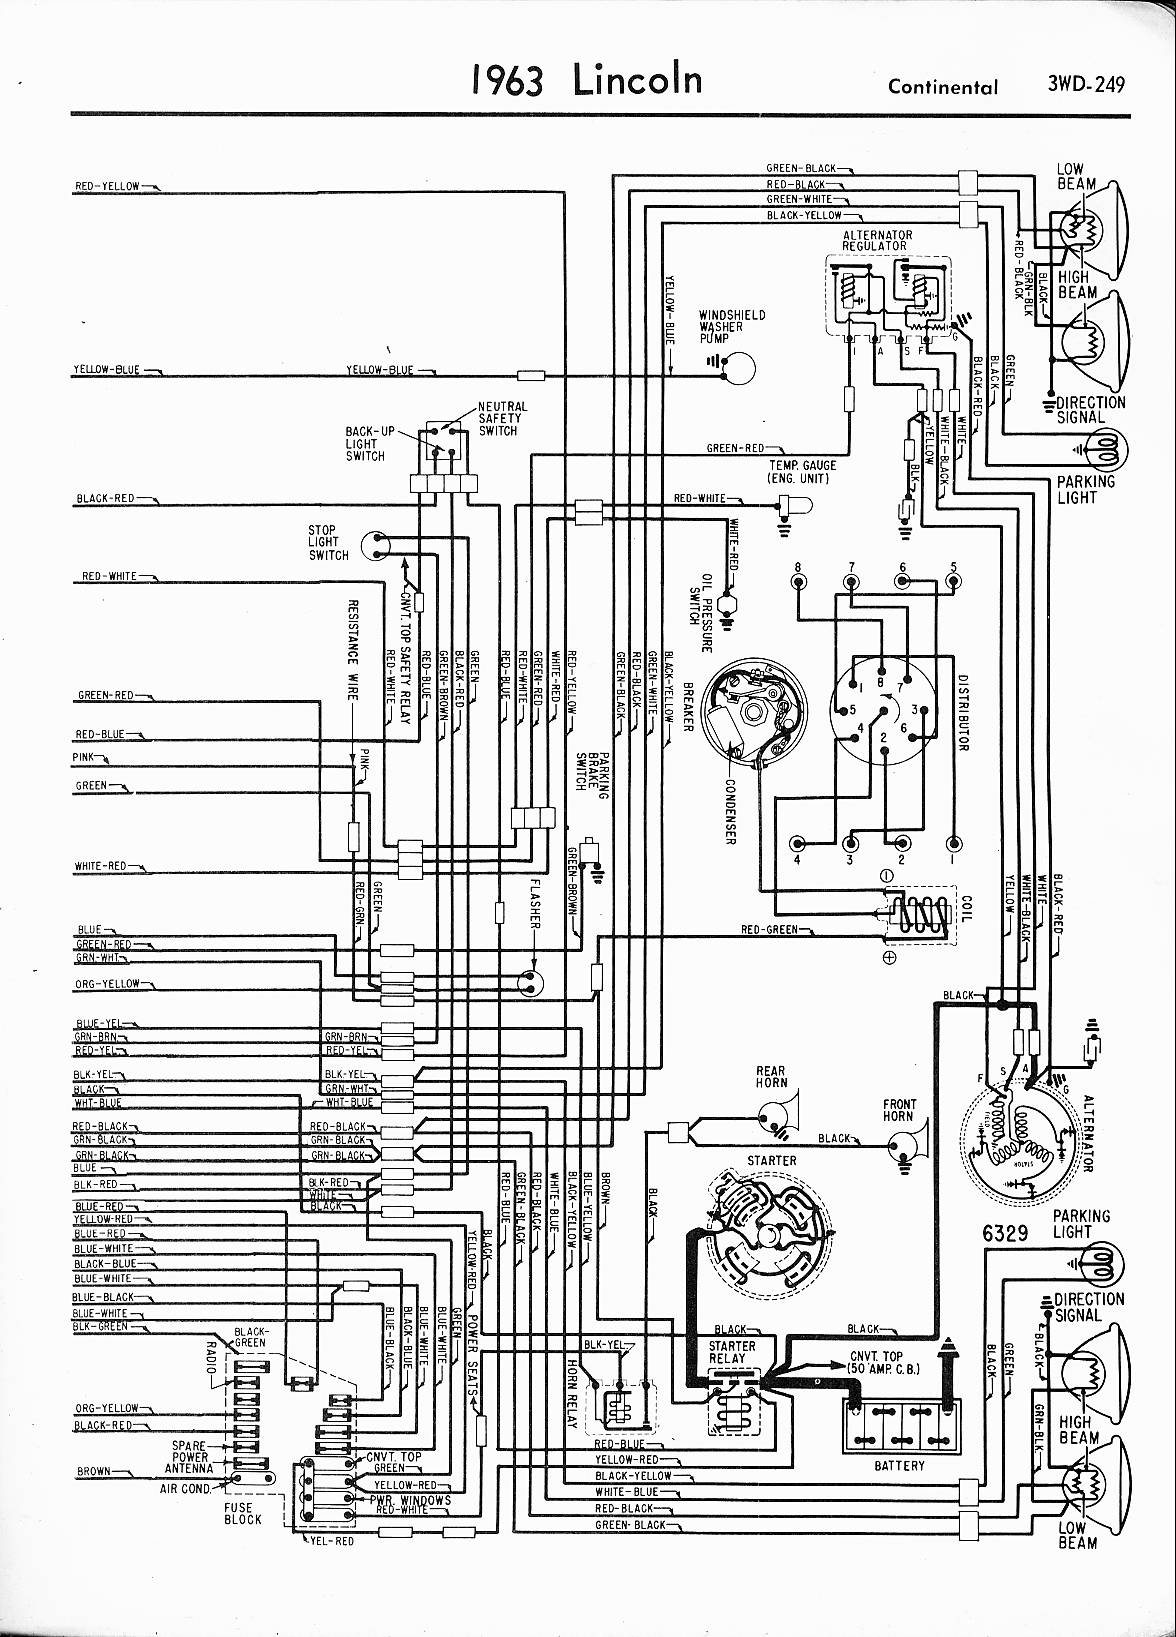 hight resolution of 1963 lincoln right half lincoln wiring diagrams 1957 1965 1963 lincoln right half 1996 lincoln continental power window